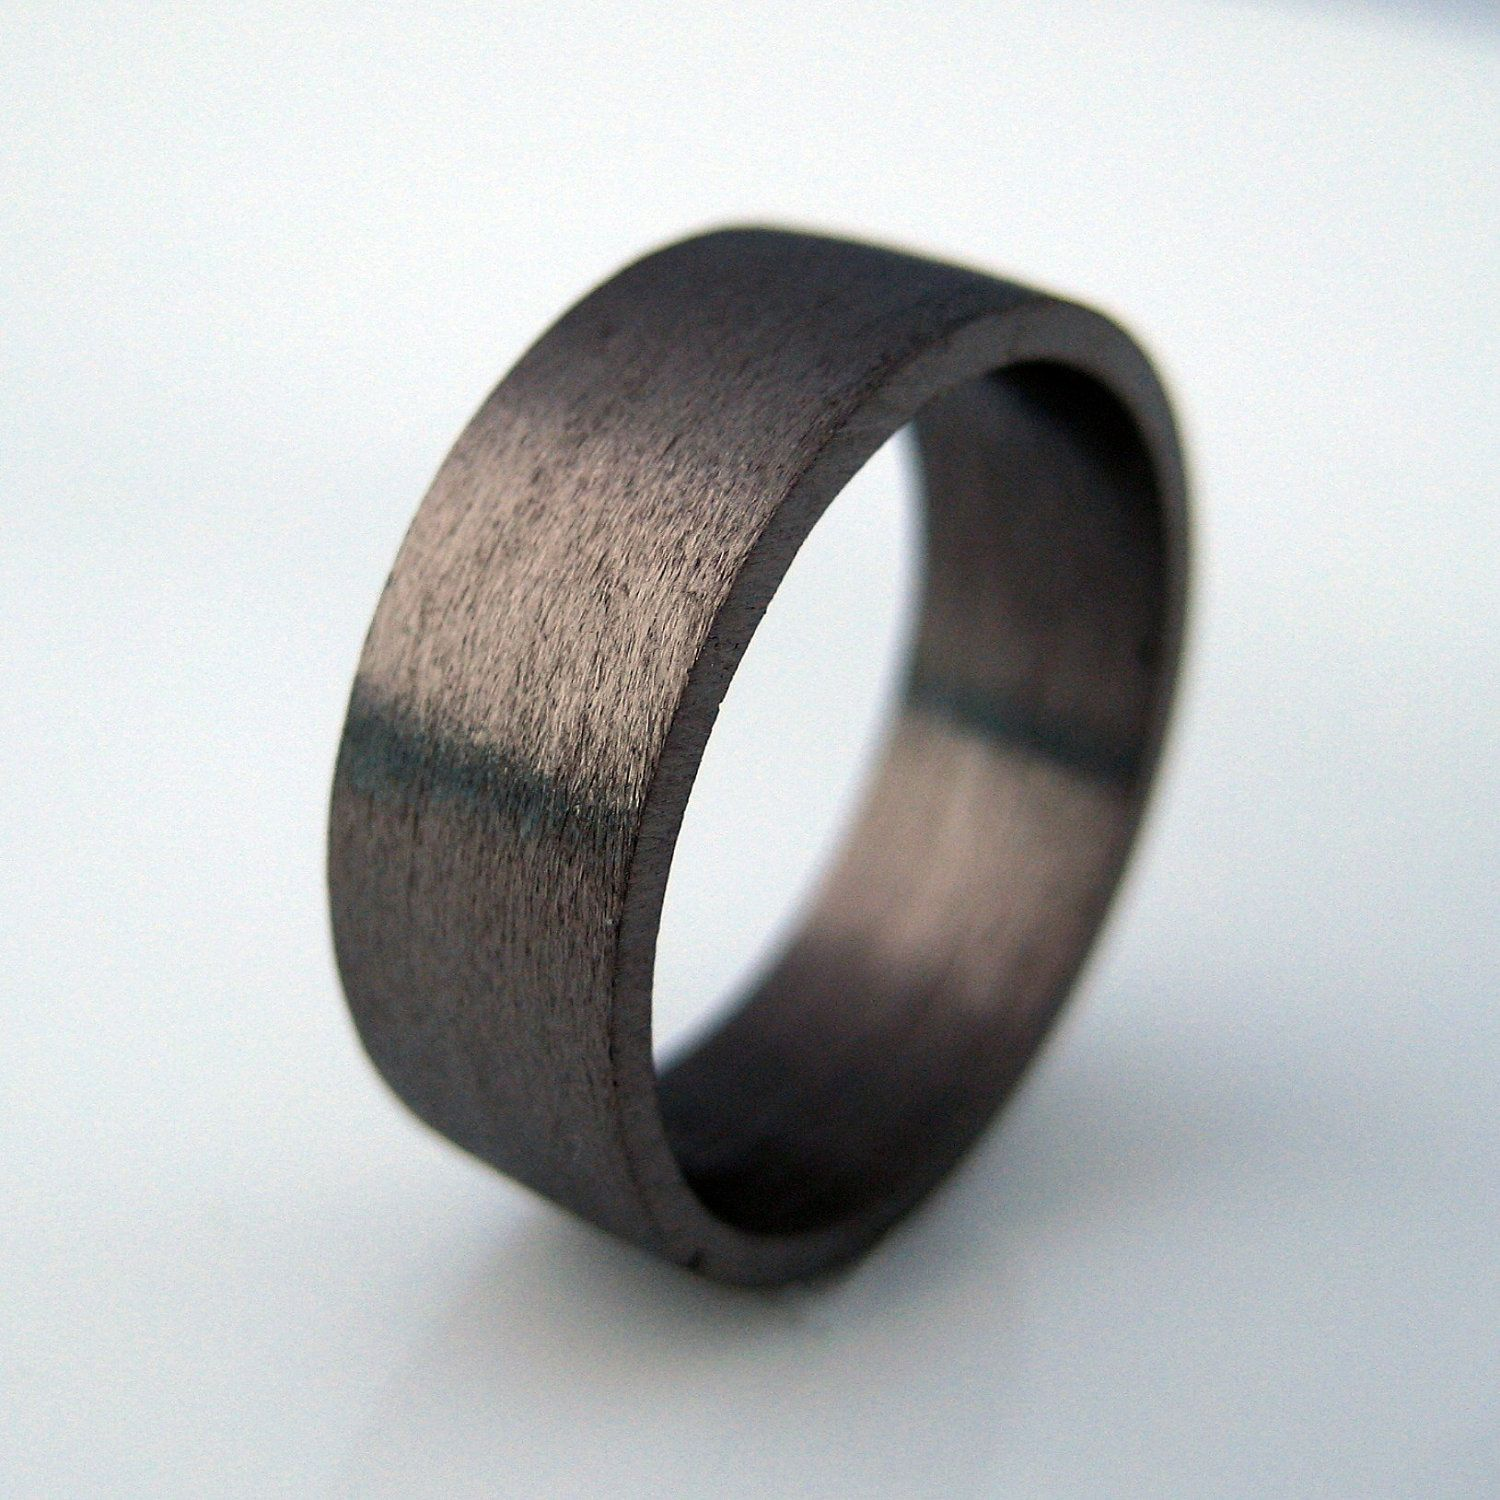 7mm wide wedding band black gold ring personalize and engrave